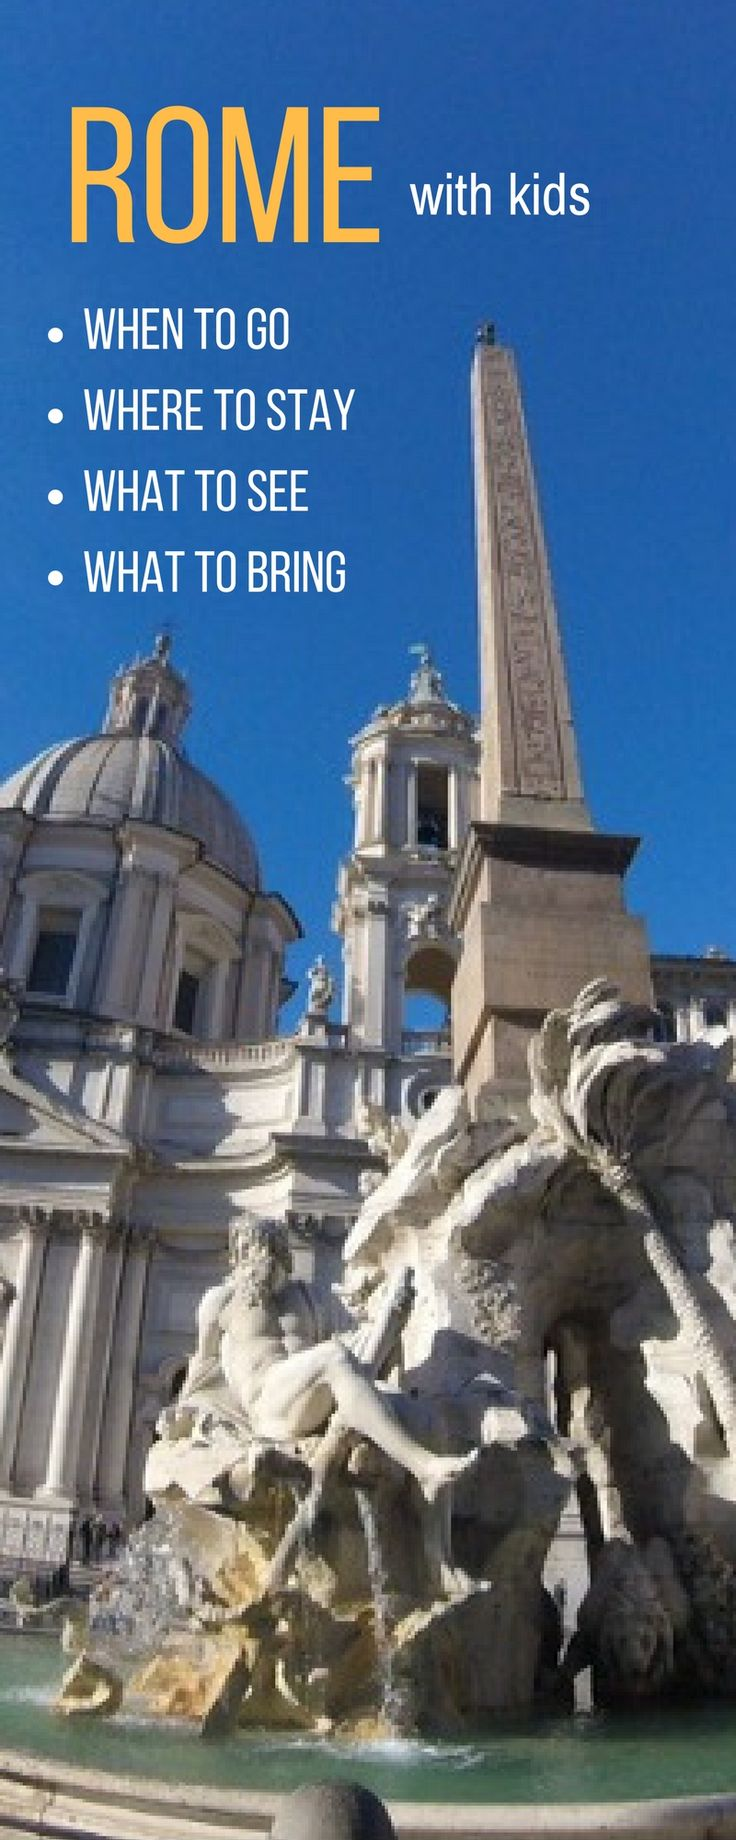 A great guide for  visiting Rome with kids curated by a local mum! Find out family friendly museums in Rome, Rome attractions for kids, the best kids tours in Rome PLUS tips and advice about what to bring and where to stay. Family travel to Rome made easy